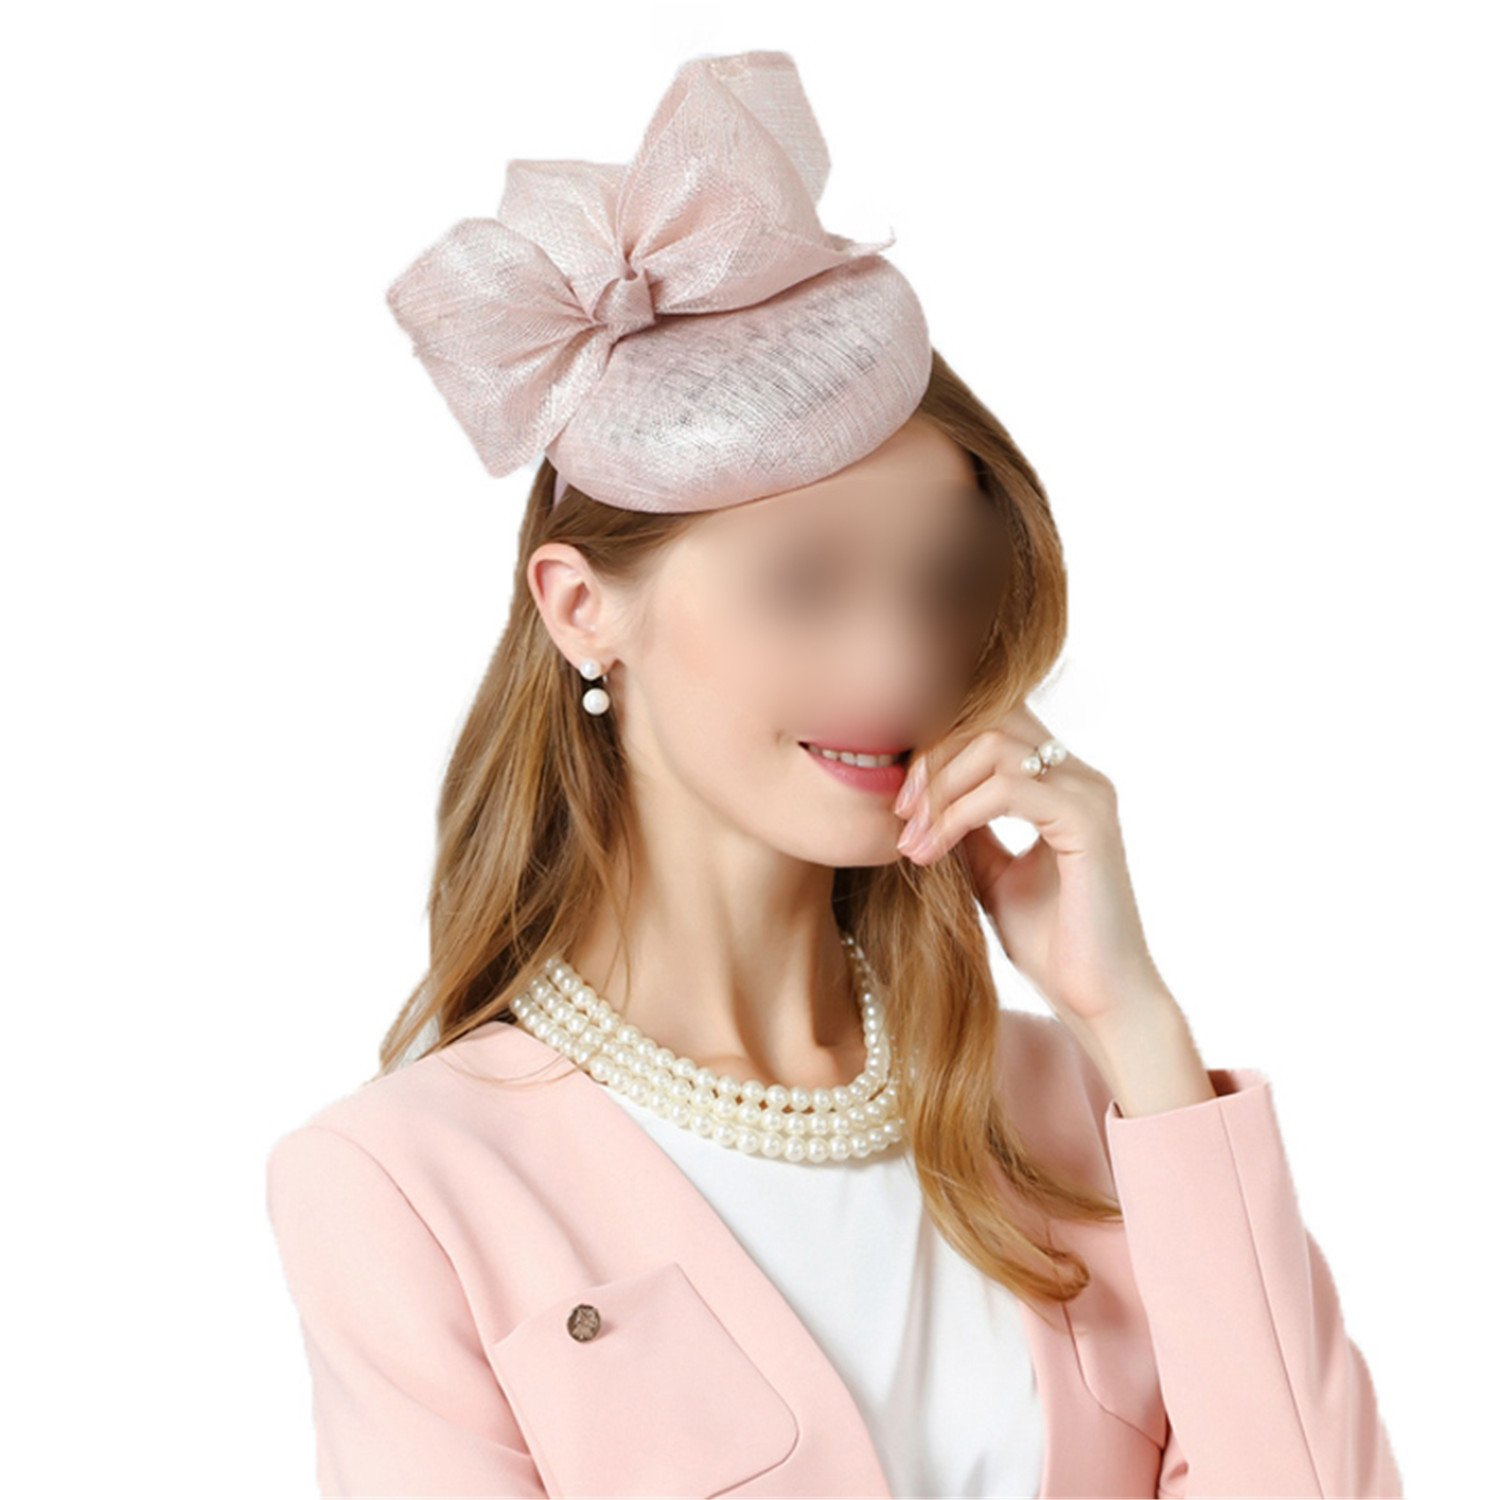 Fascinator Hat for Wedding Pink Pillbox Hat with Bowknot Summer Fedora for  Women Hair Accessories Linen Church Cocktail Hats at Amazon Women s  Clothing ... 6bf14dc7549